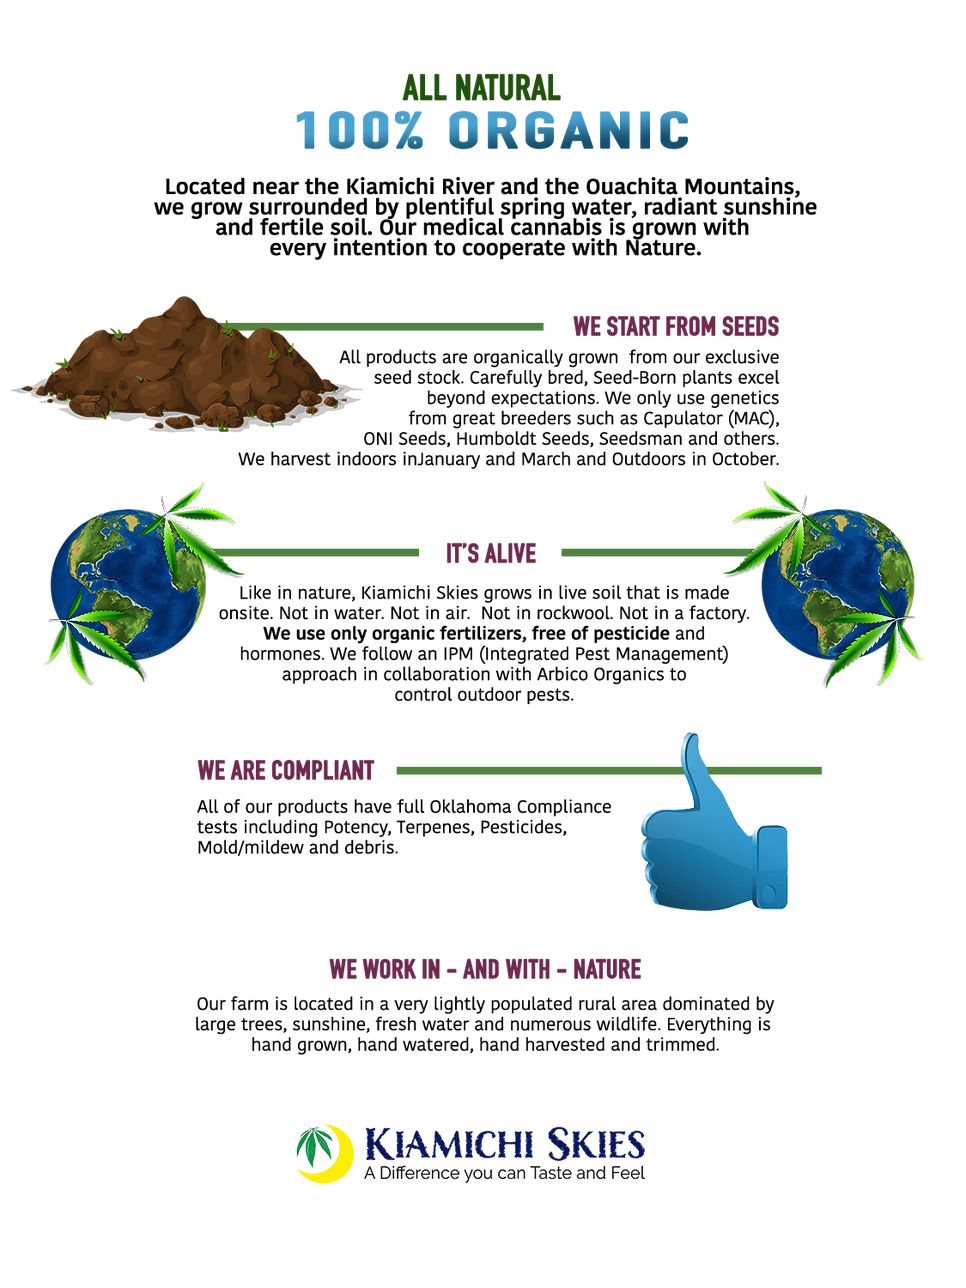 ORGANICinfographic_website.png